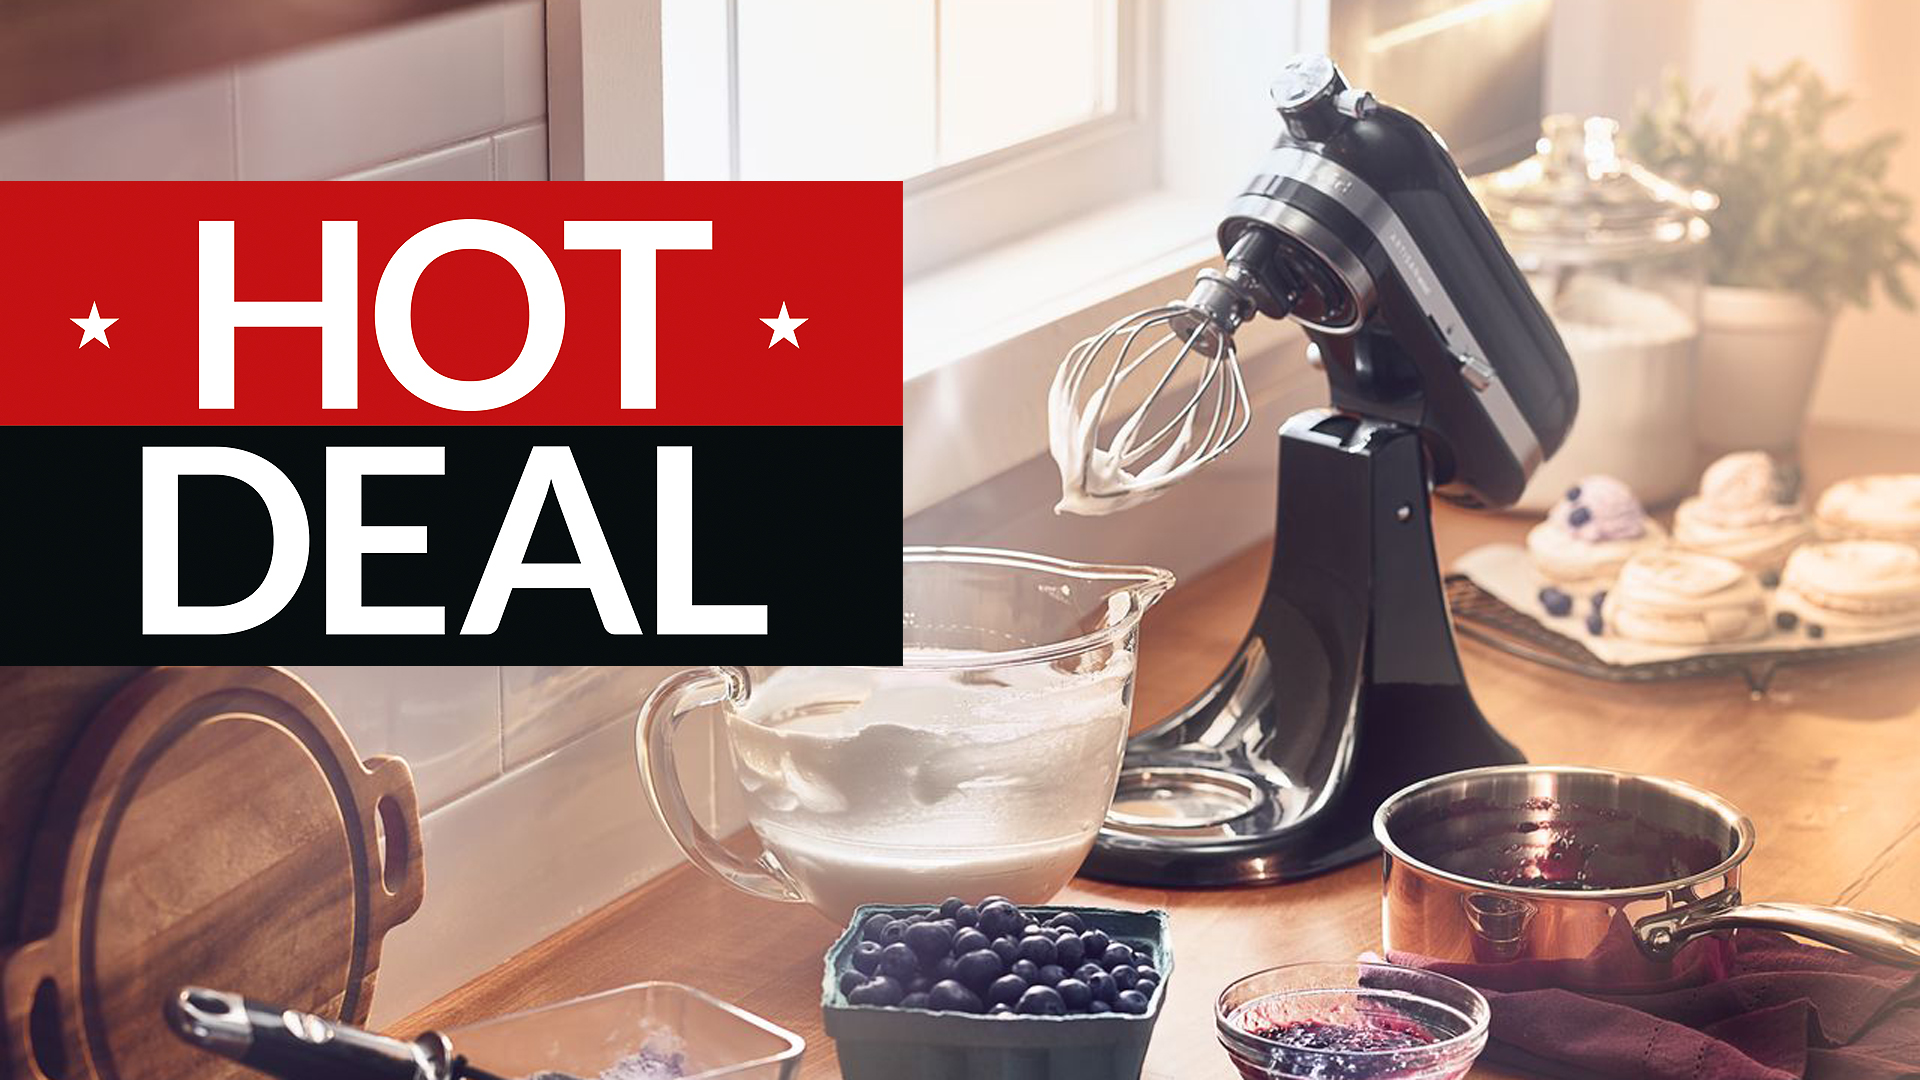 Best Kitchenaid Artisan Stand Mixer Deal In The January